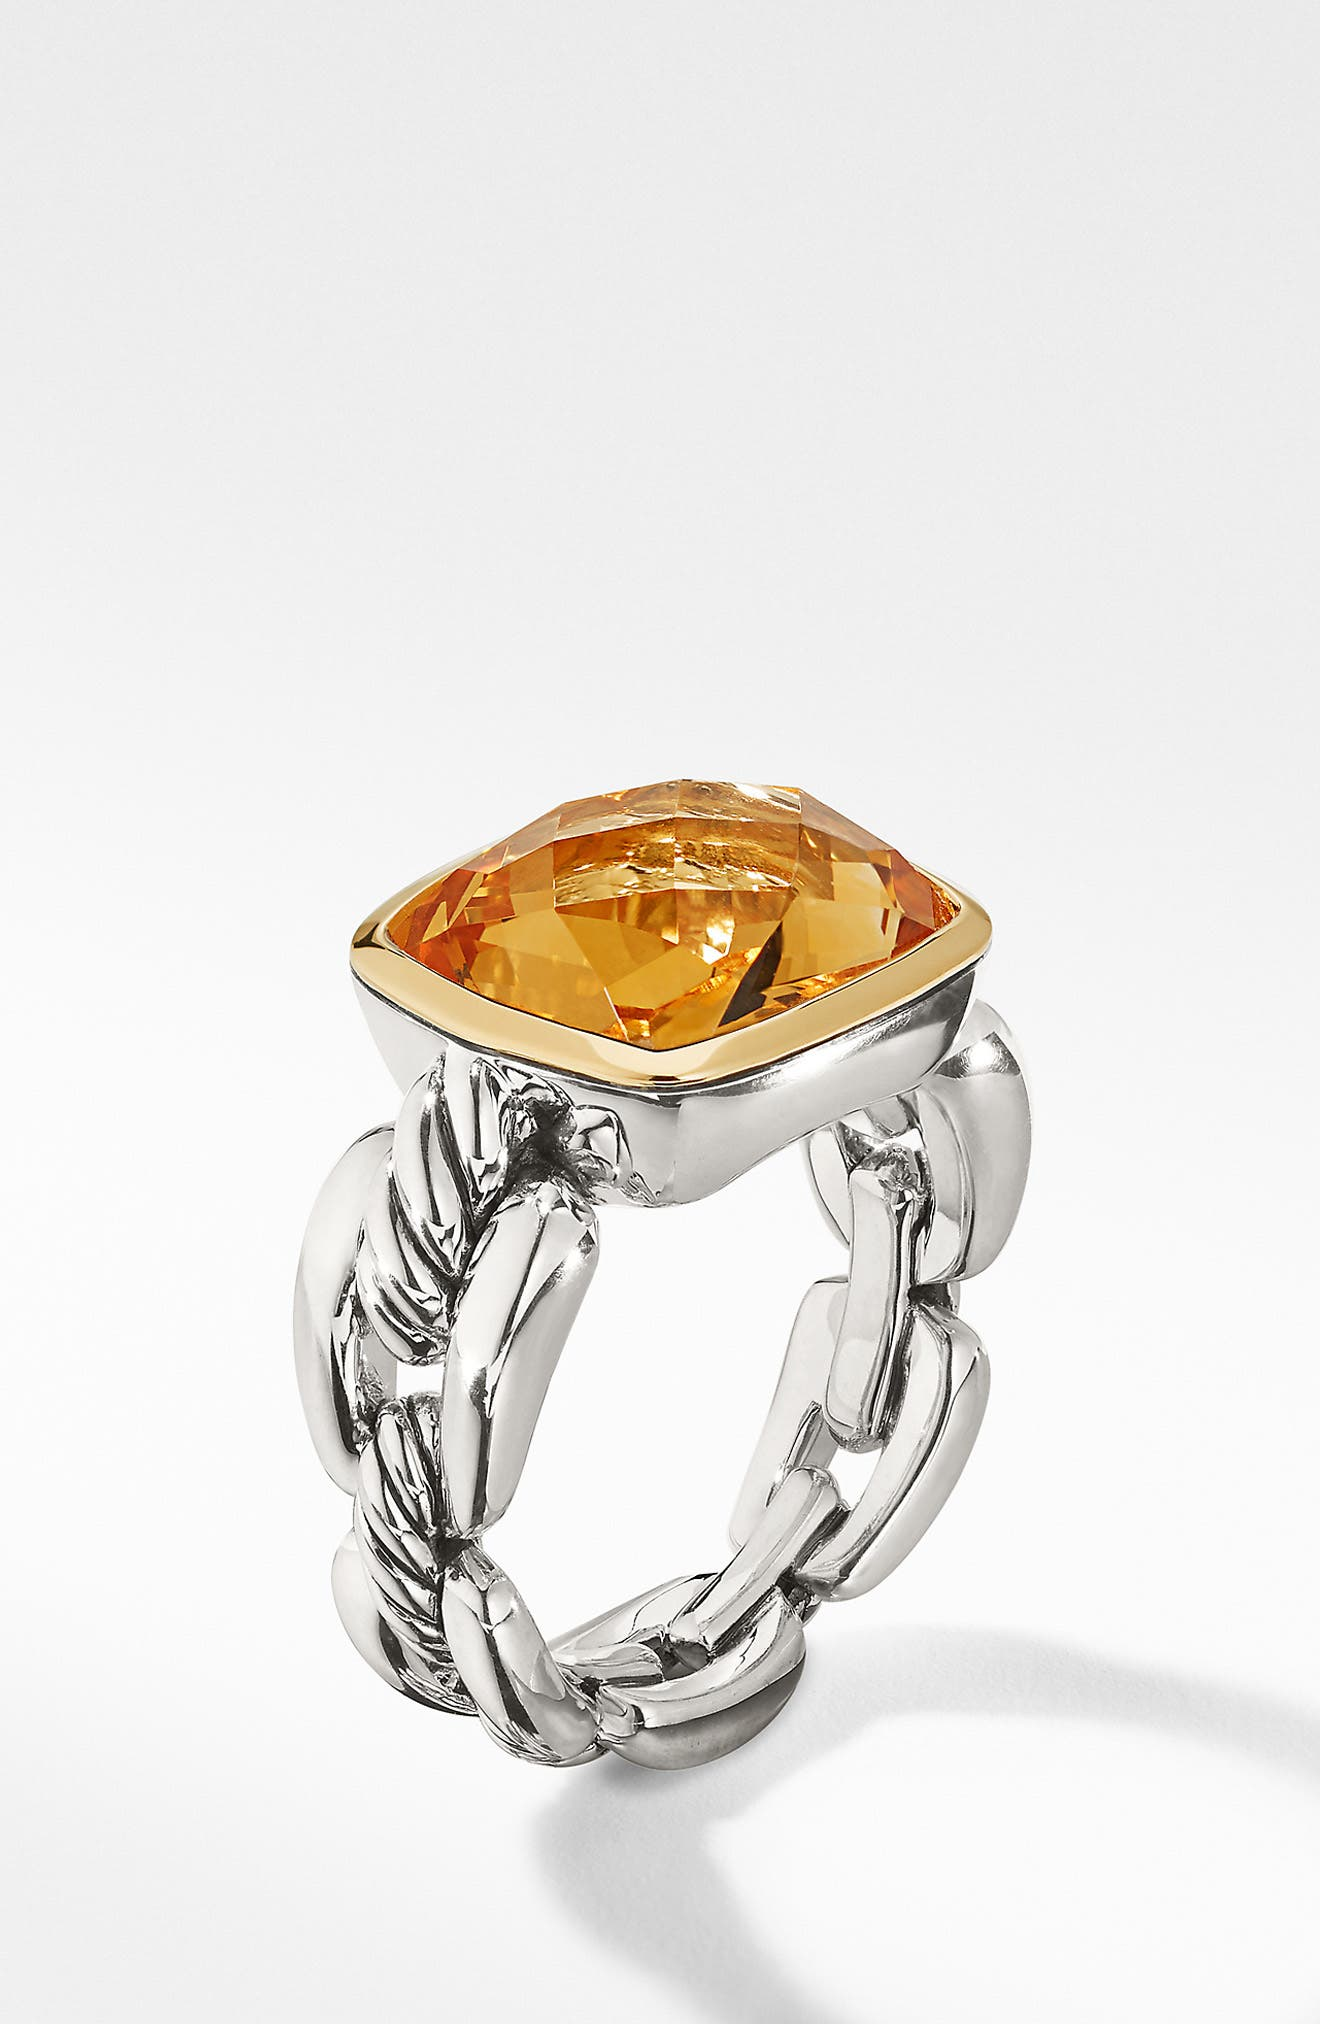 Wellesley Link Statement Ring with 18K Gold,                             Main thumbnail 1, color,                             SILVER/ CITRINE